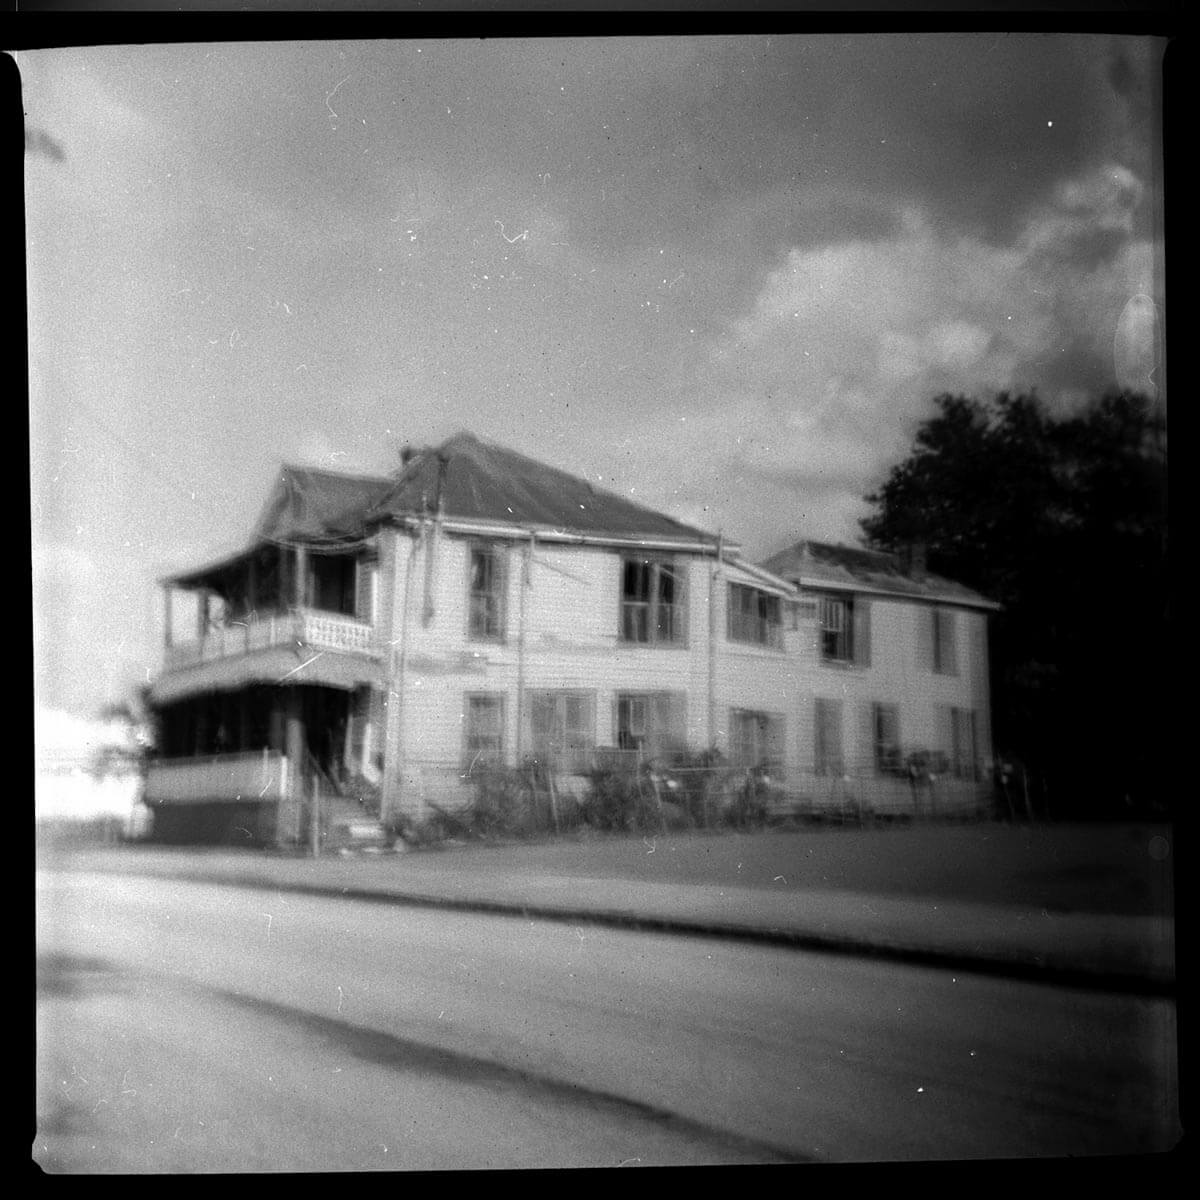 5 Frames... Of Tampa's Ybor City Historic District on ILFORD HP5 PLUS (620 Format / Kodak Duaflex IV) - by Chip Weiner